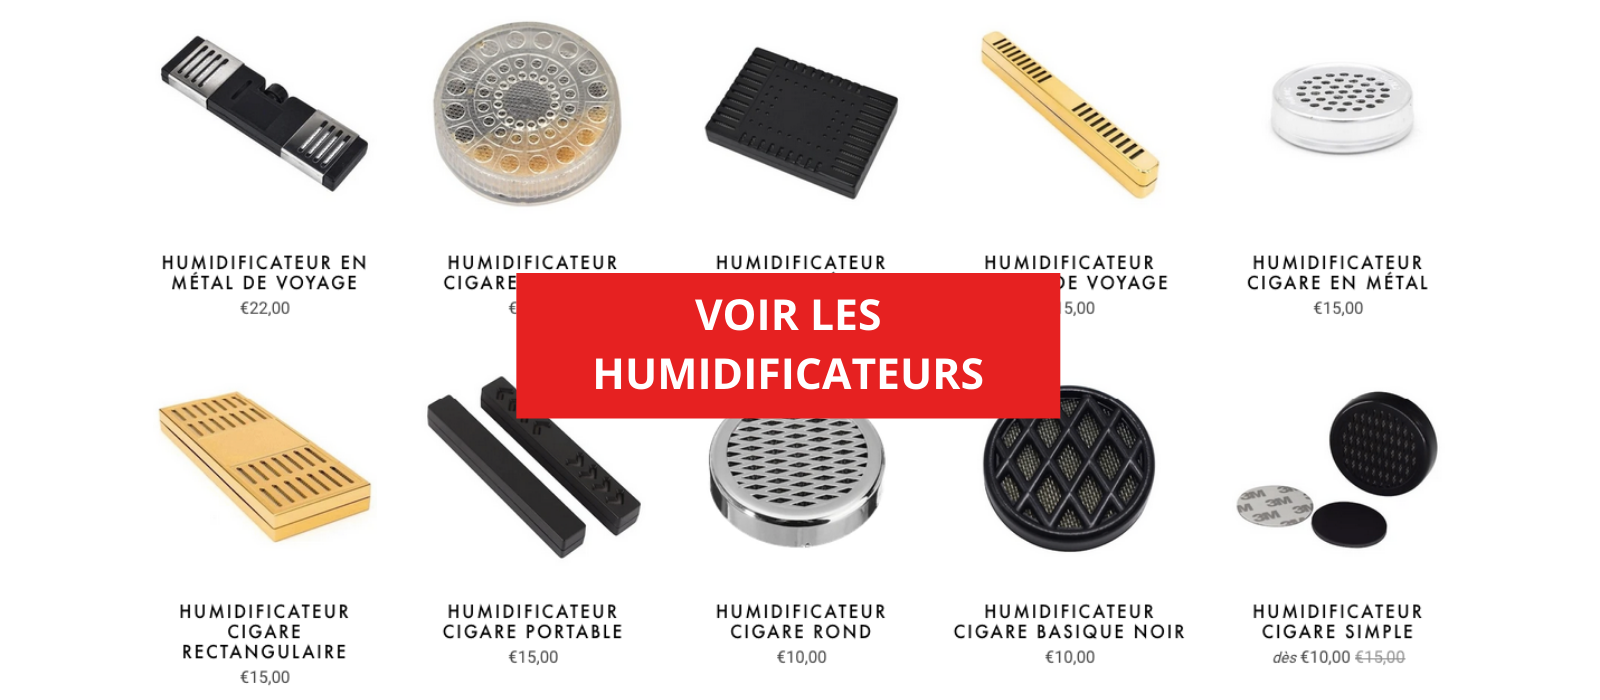 humidificateur cigare